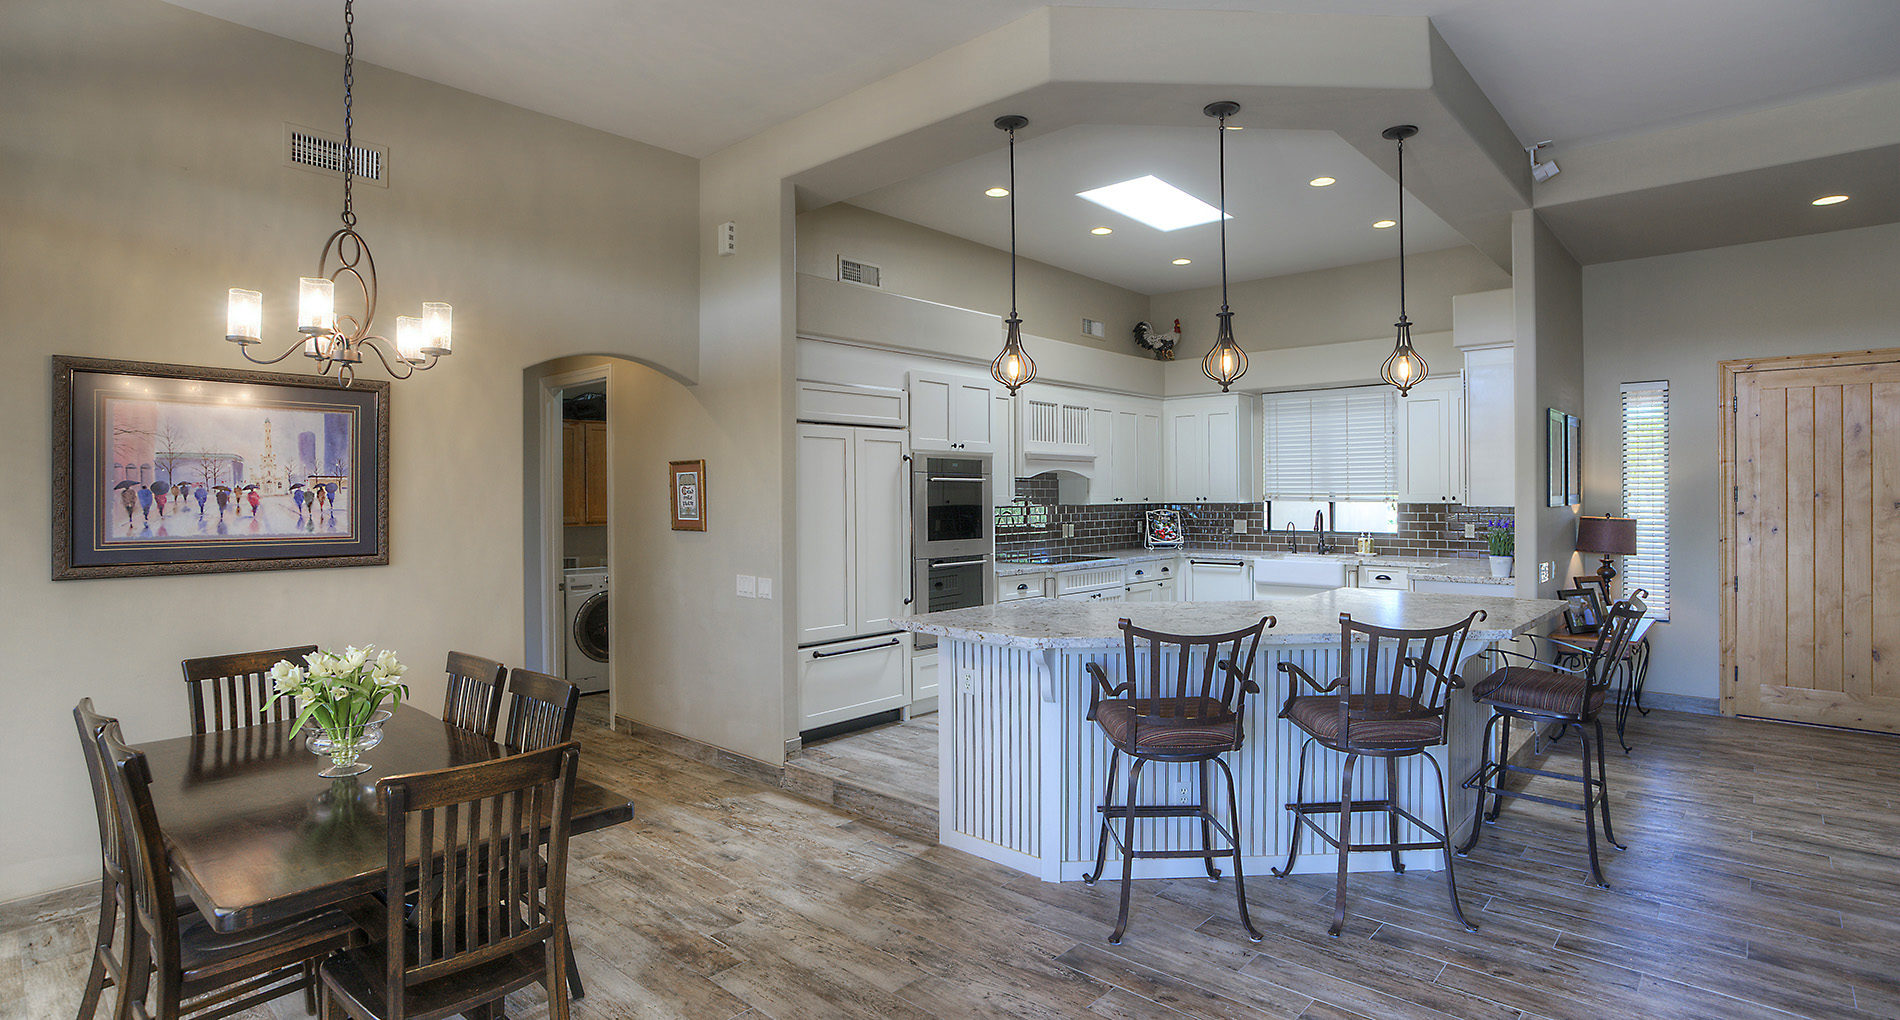 Kitchen Remodeling & Design in Gilbert, AZ | Alair Homes Gilbert